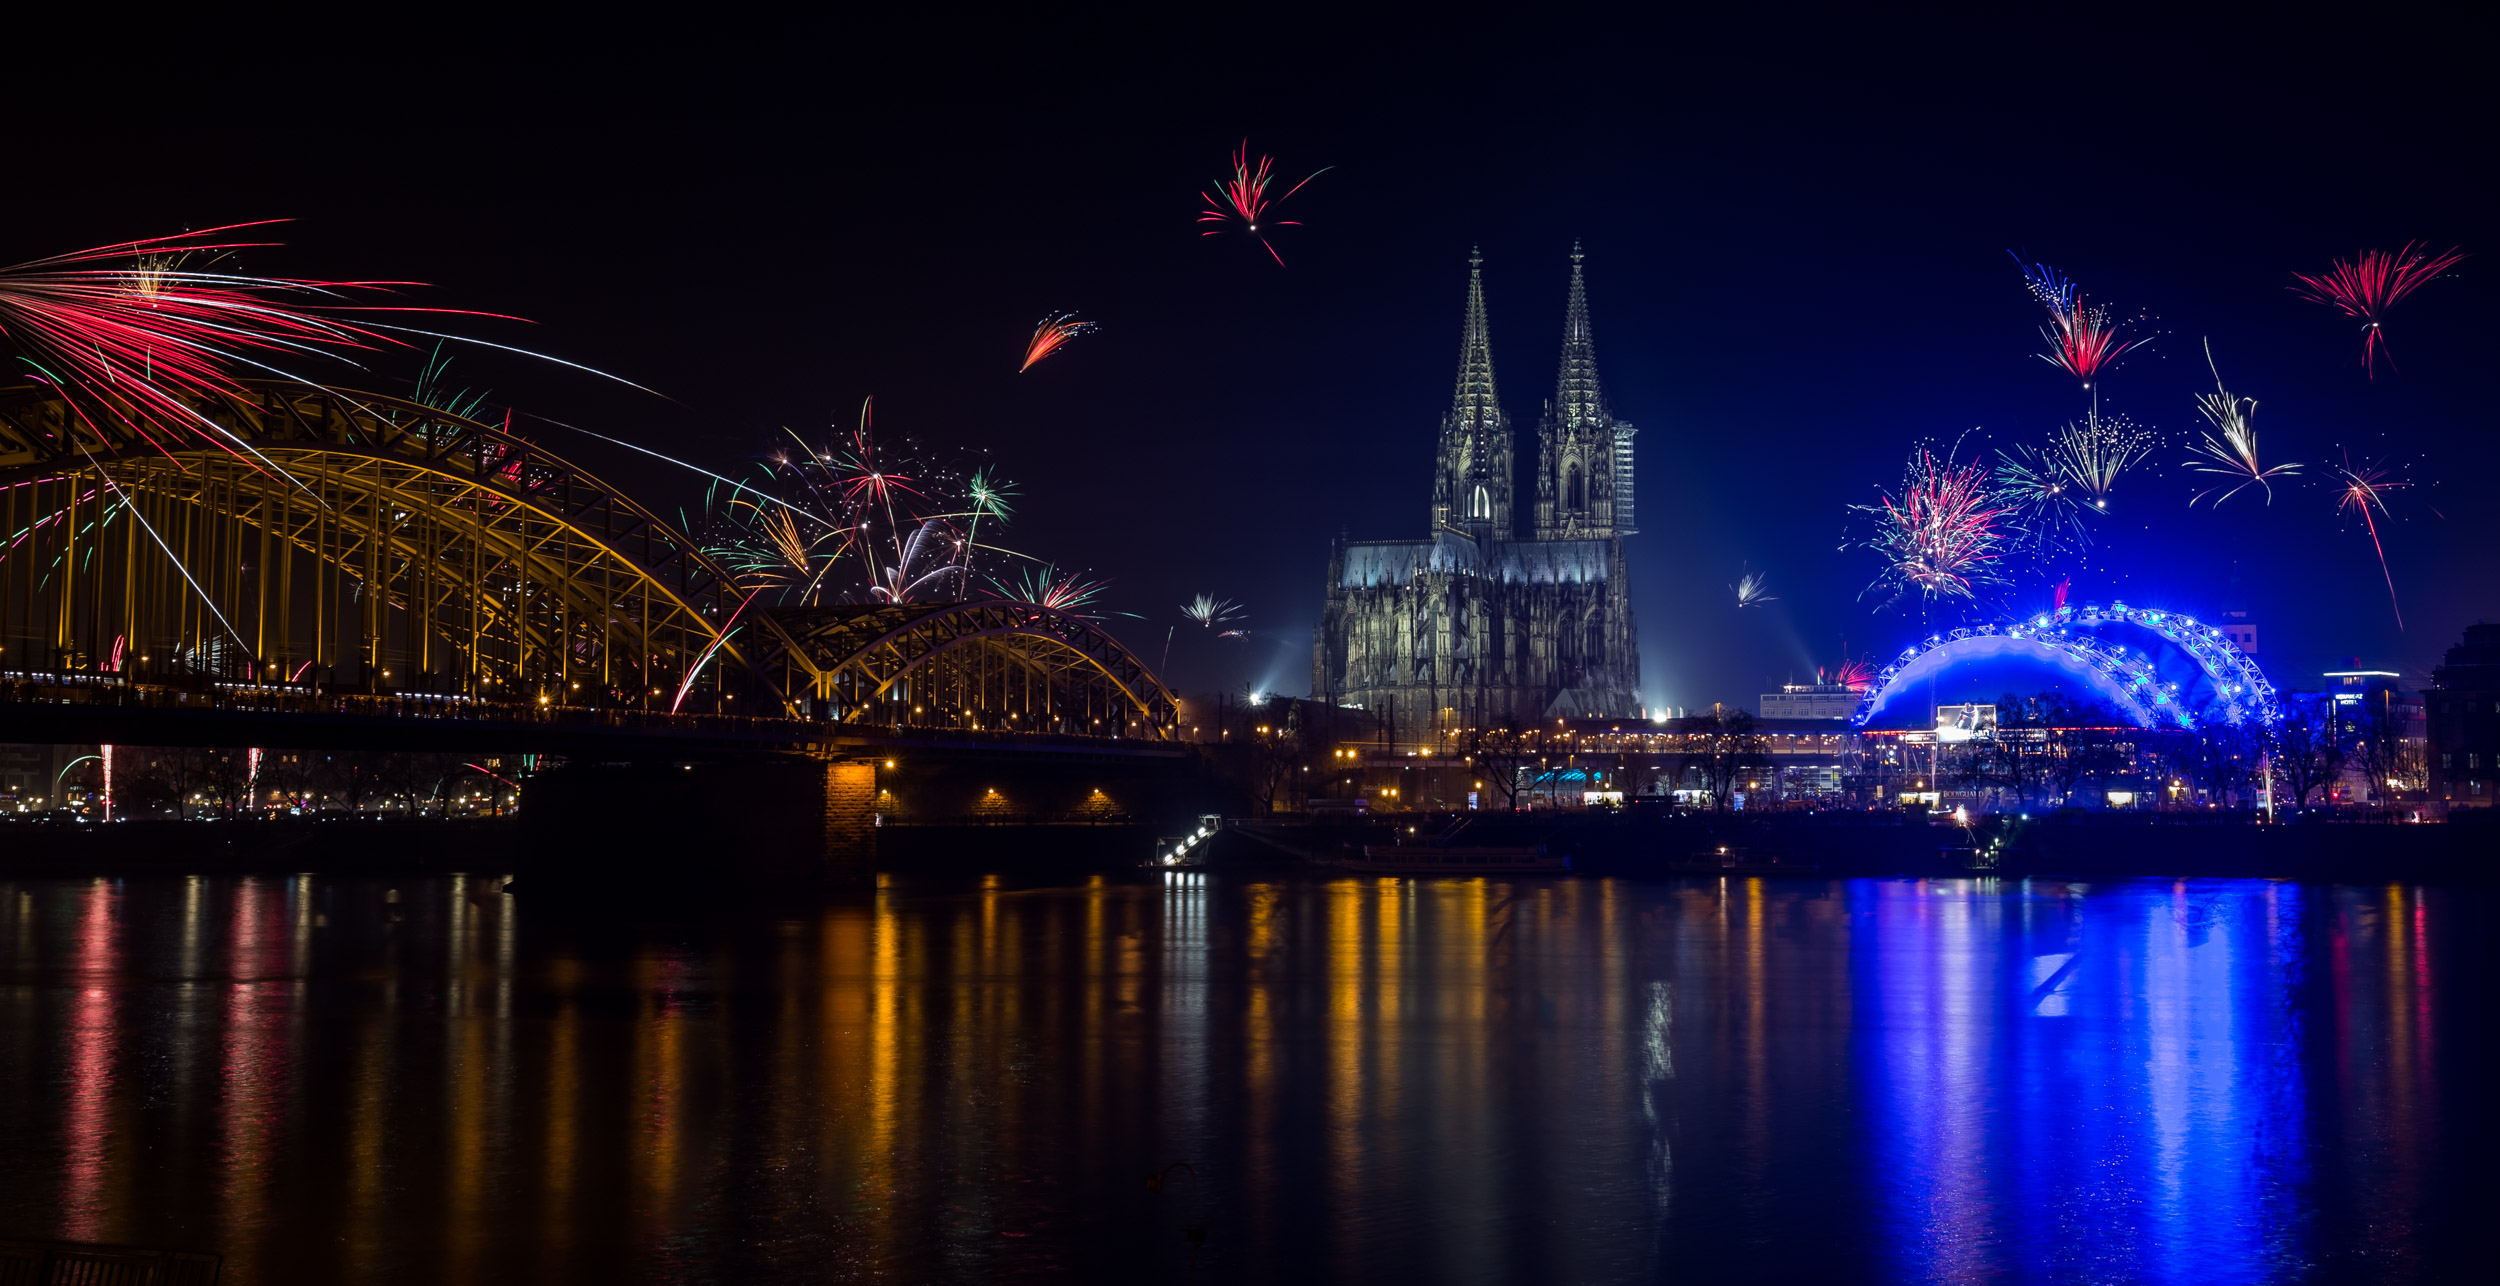 Cologne Cathedral - Cologne, Germany - City & Architecture Photography